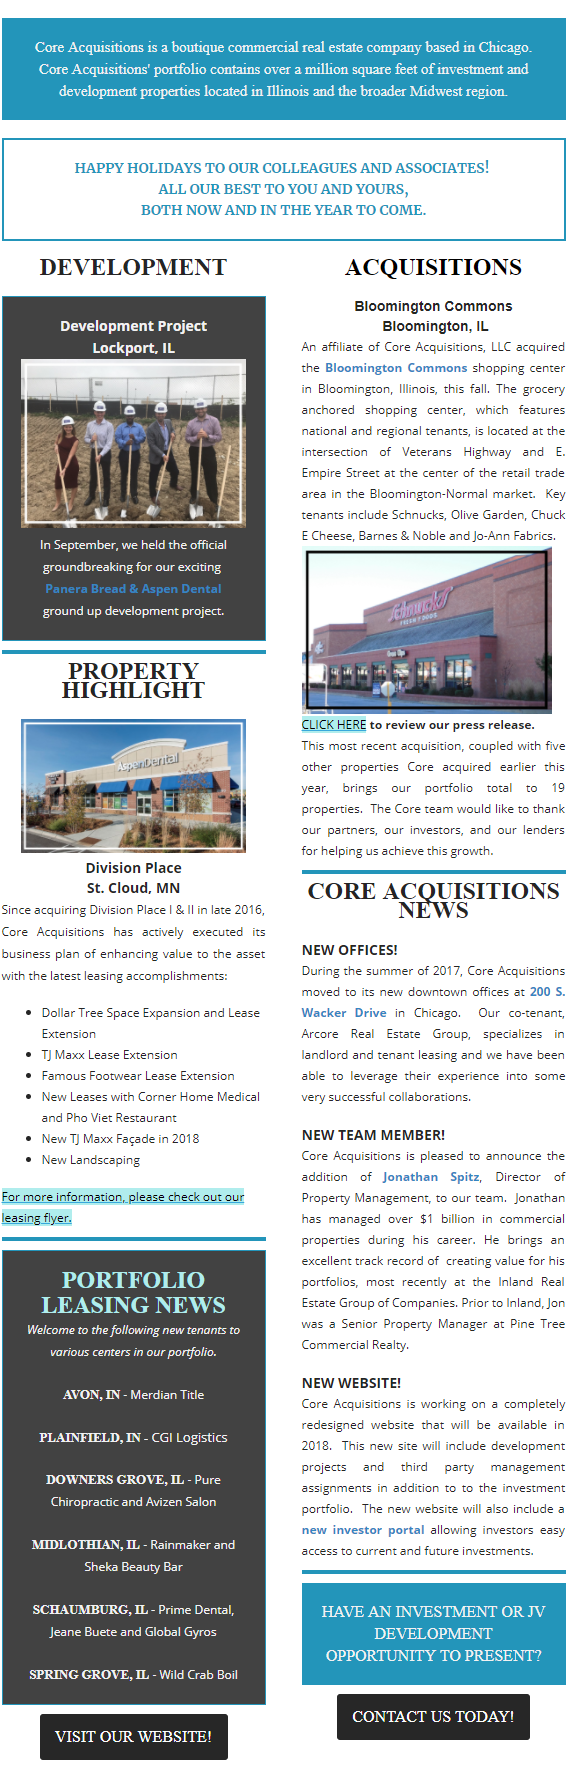 Read all about Core Acquisition's latest news and updates in the December 2017 holiday newsletter.